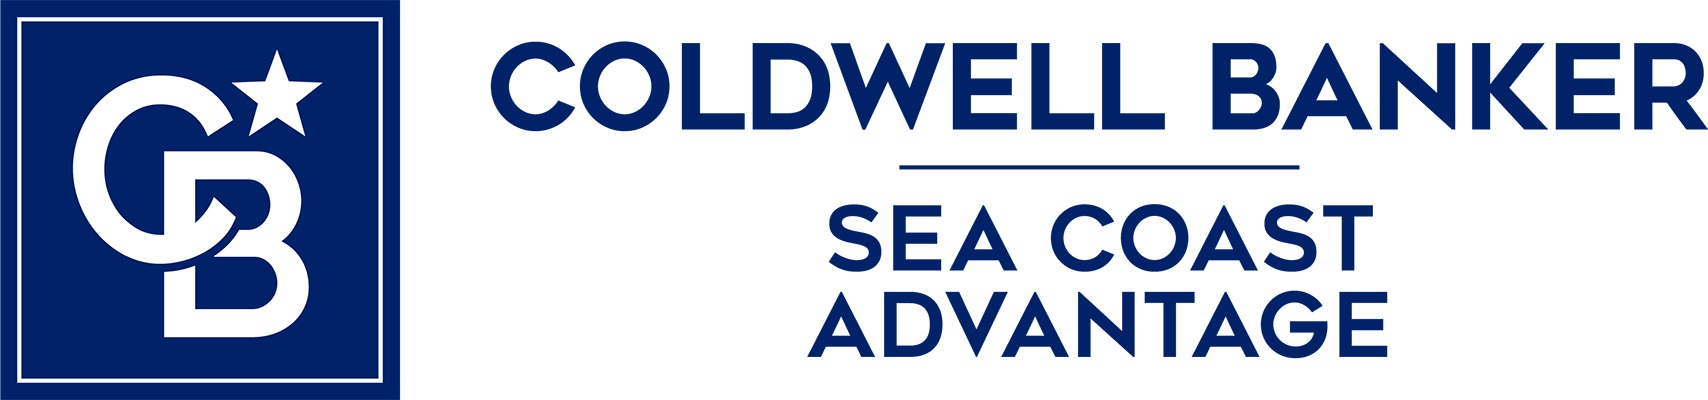 Dana Gore - Coldwell Banker Sea Coast Advantage Realty